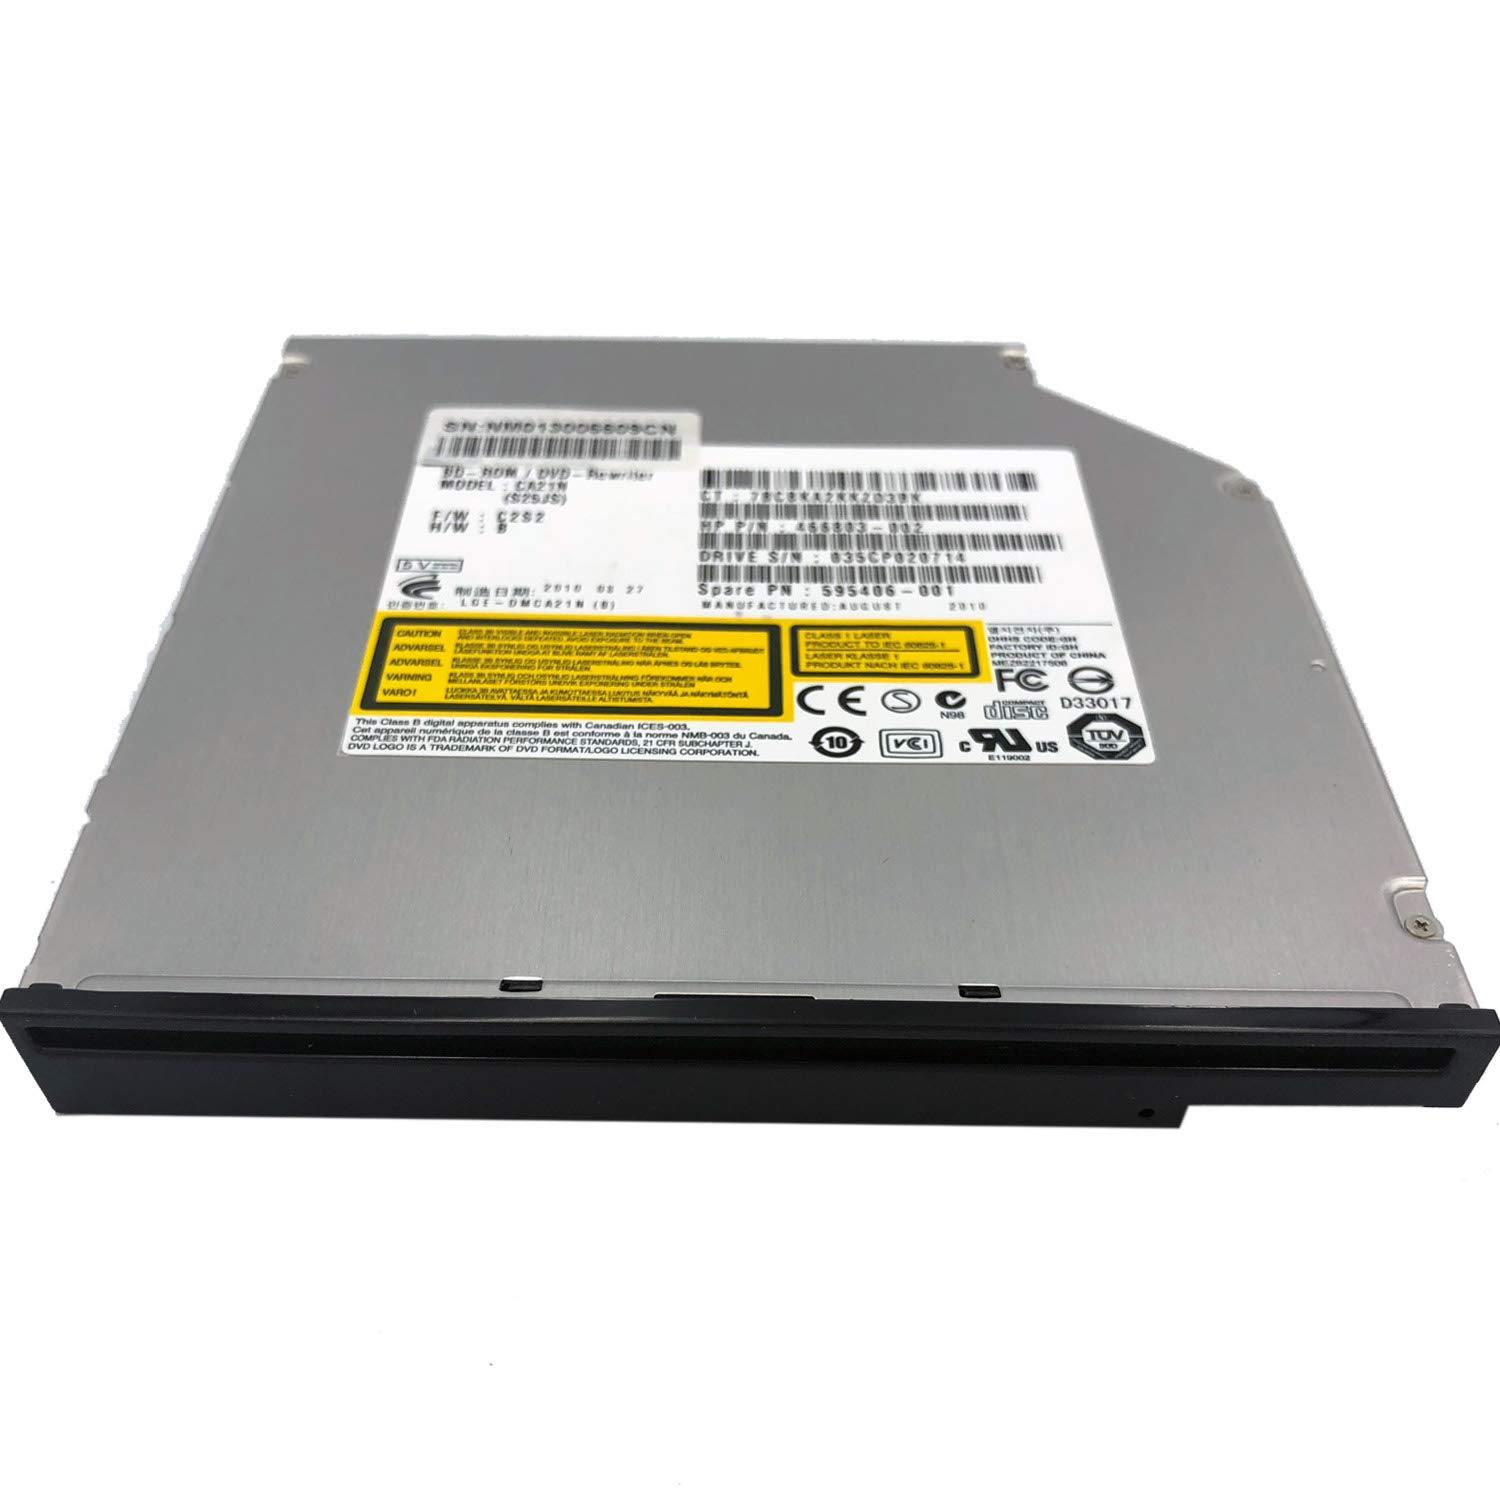 Y-NX New Internal Blu-ray Reader CA21N CA40N SATA Slot in 3D Blu-ray Player DVD CD Writer for iMac Mac Mini and Other laptops by Y-NX